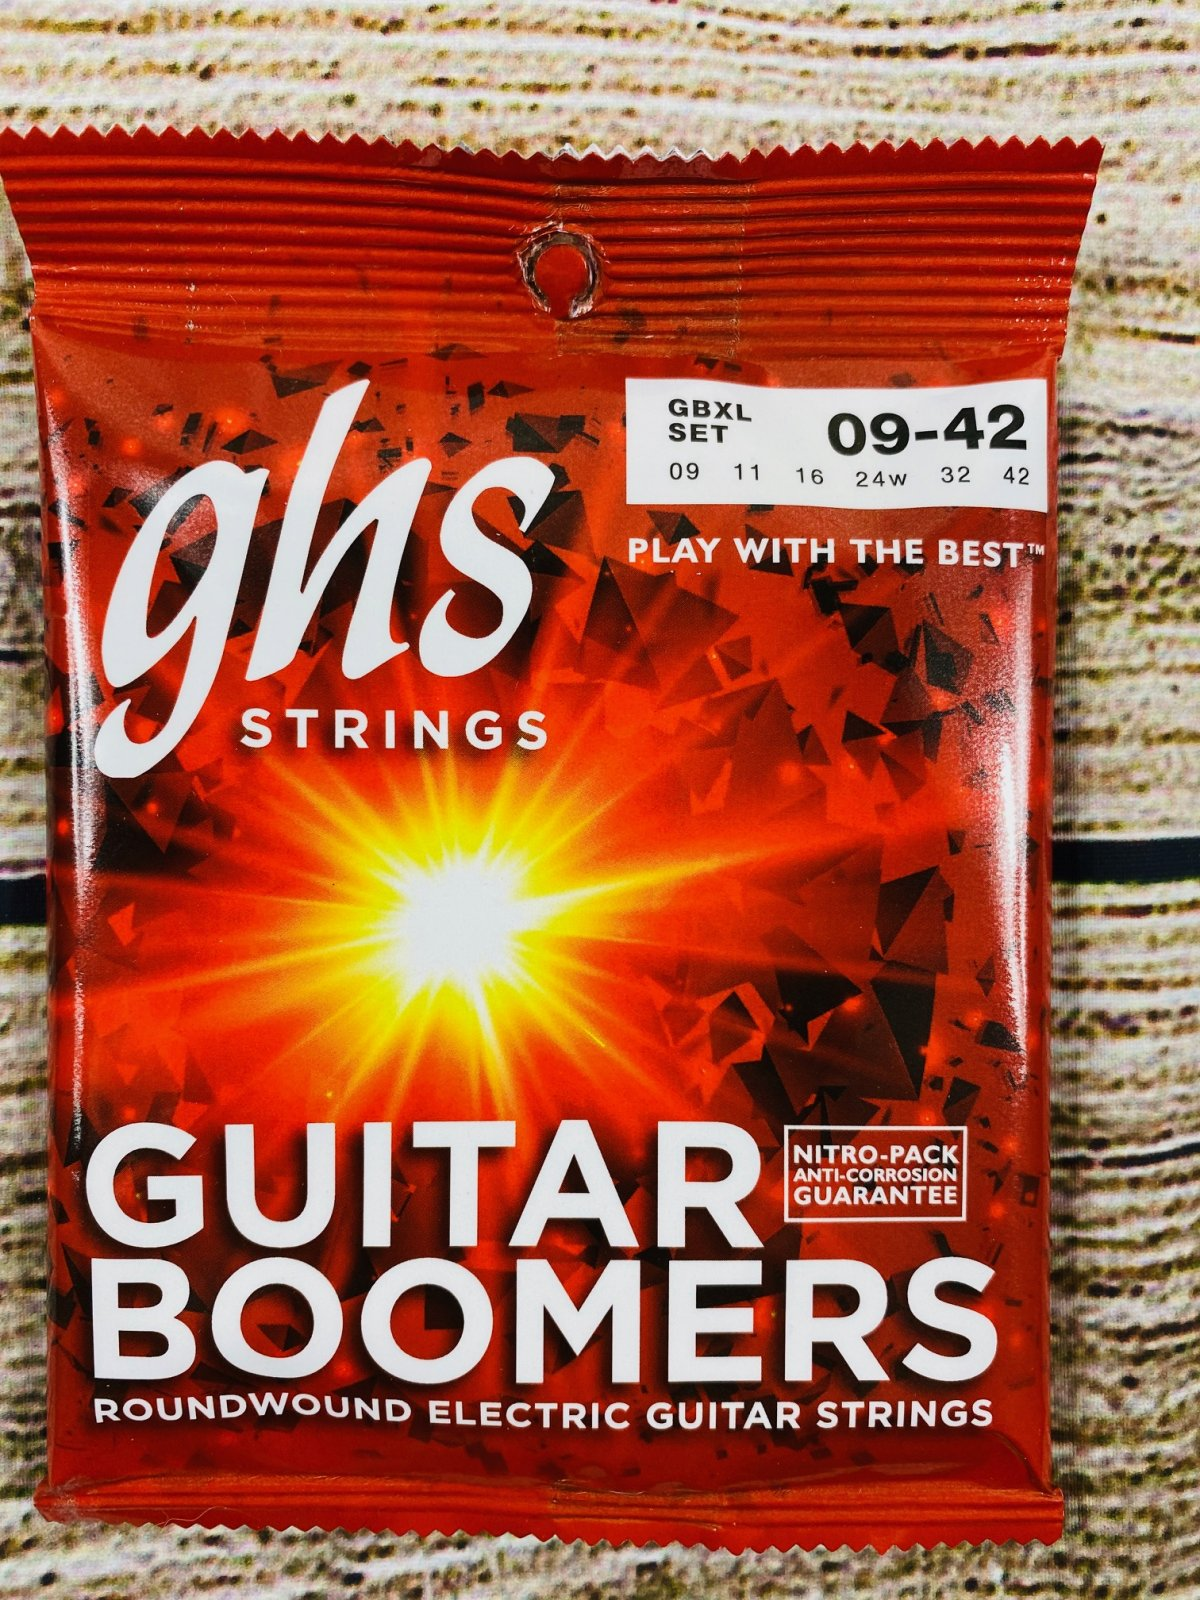 GHS GBXL Guitar Boomers Electric Guitar Strings - .009-.042 Extra Light